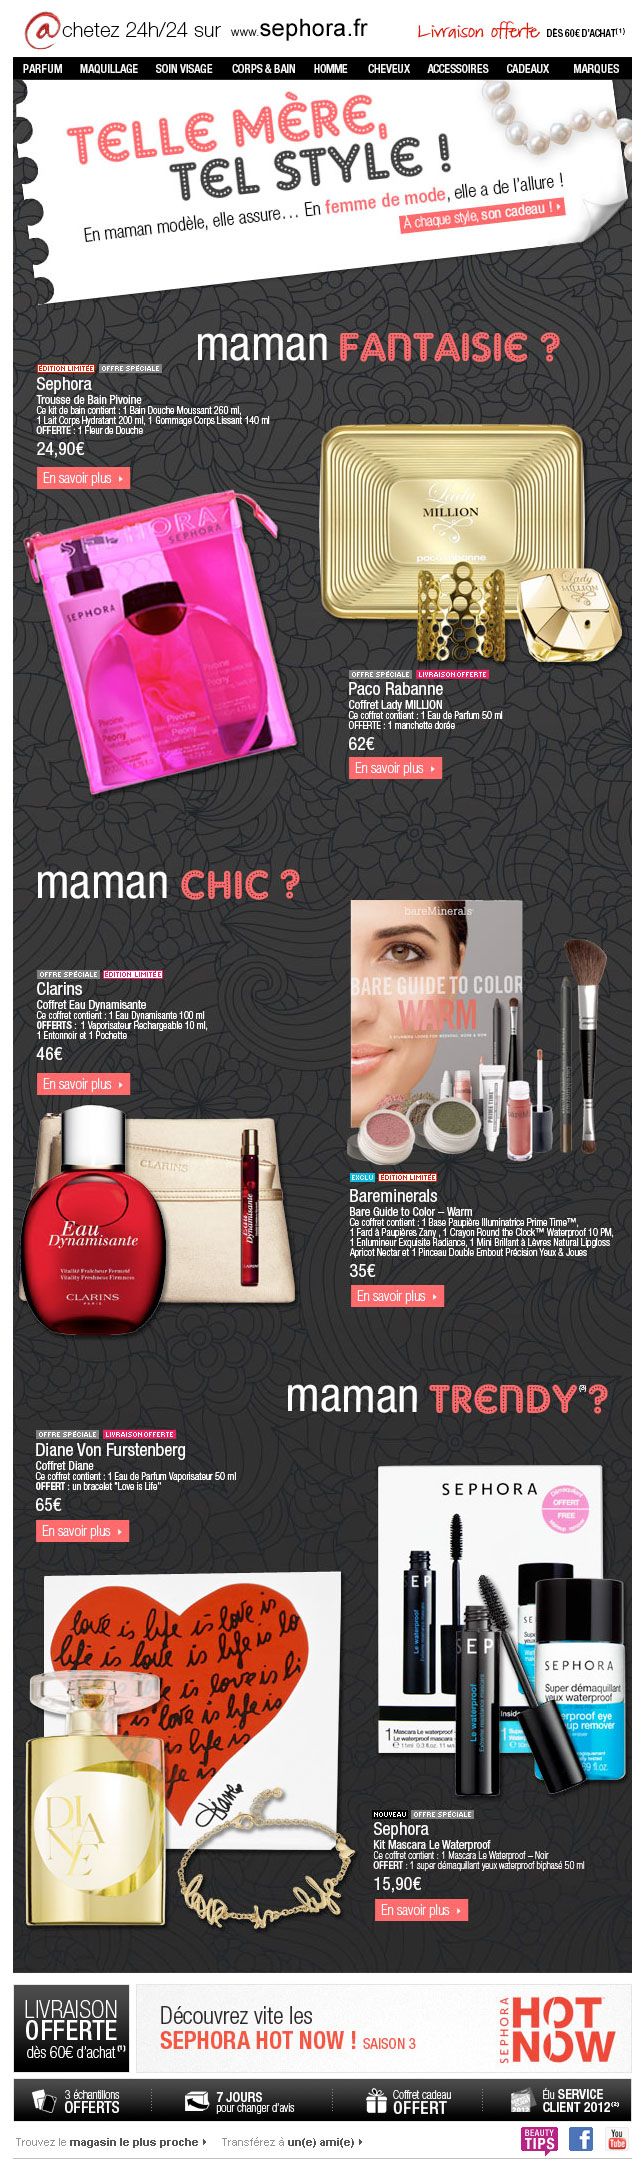 Newsletter Sephora 090512